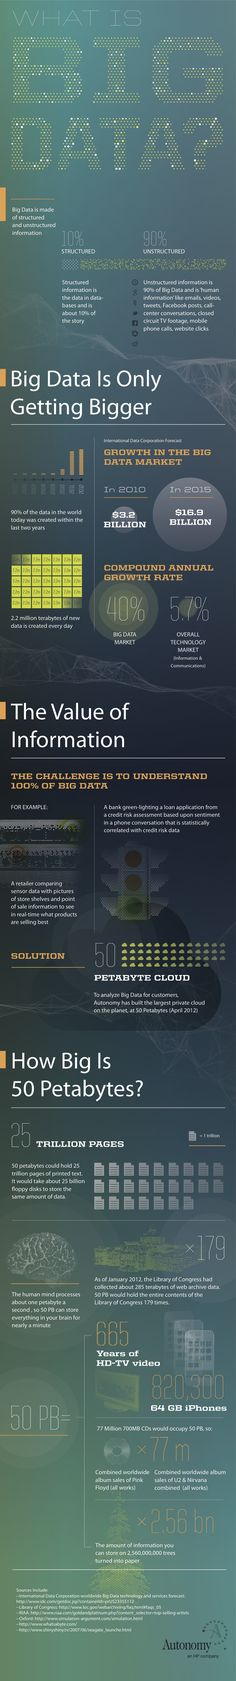 Big Data Infographic www.bigdataweek.com